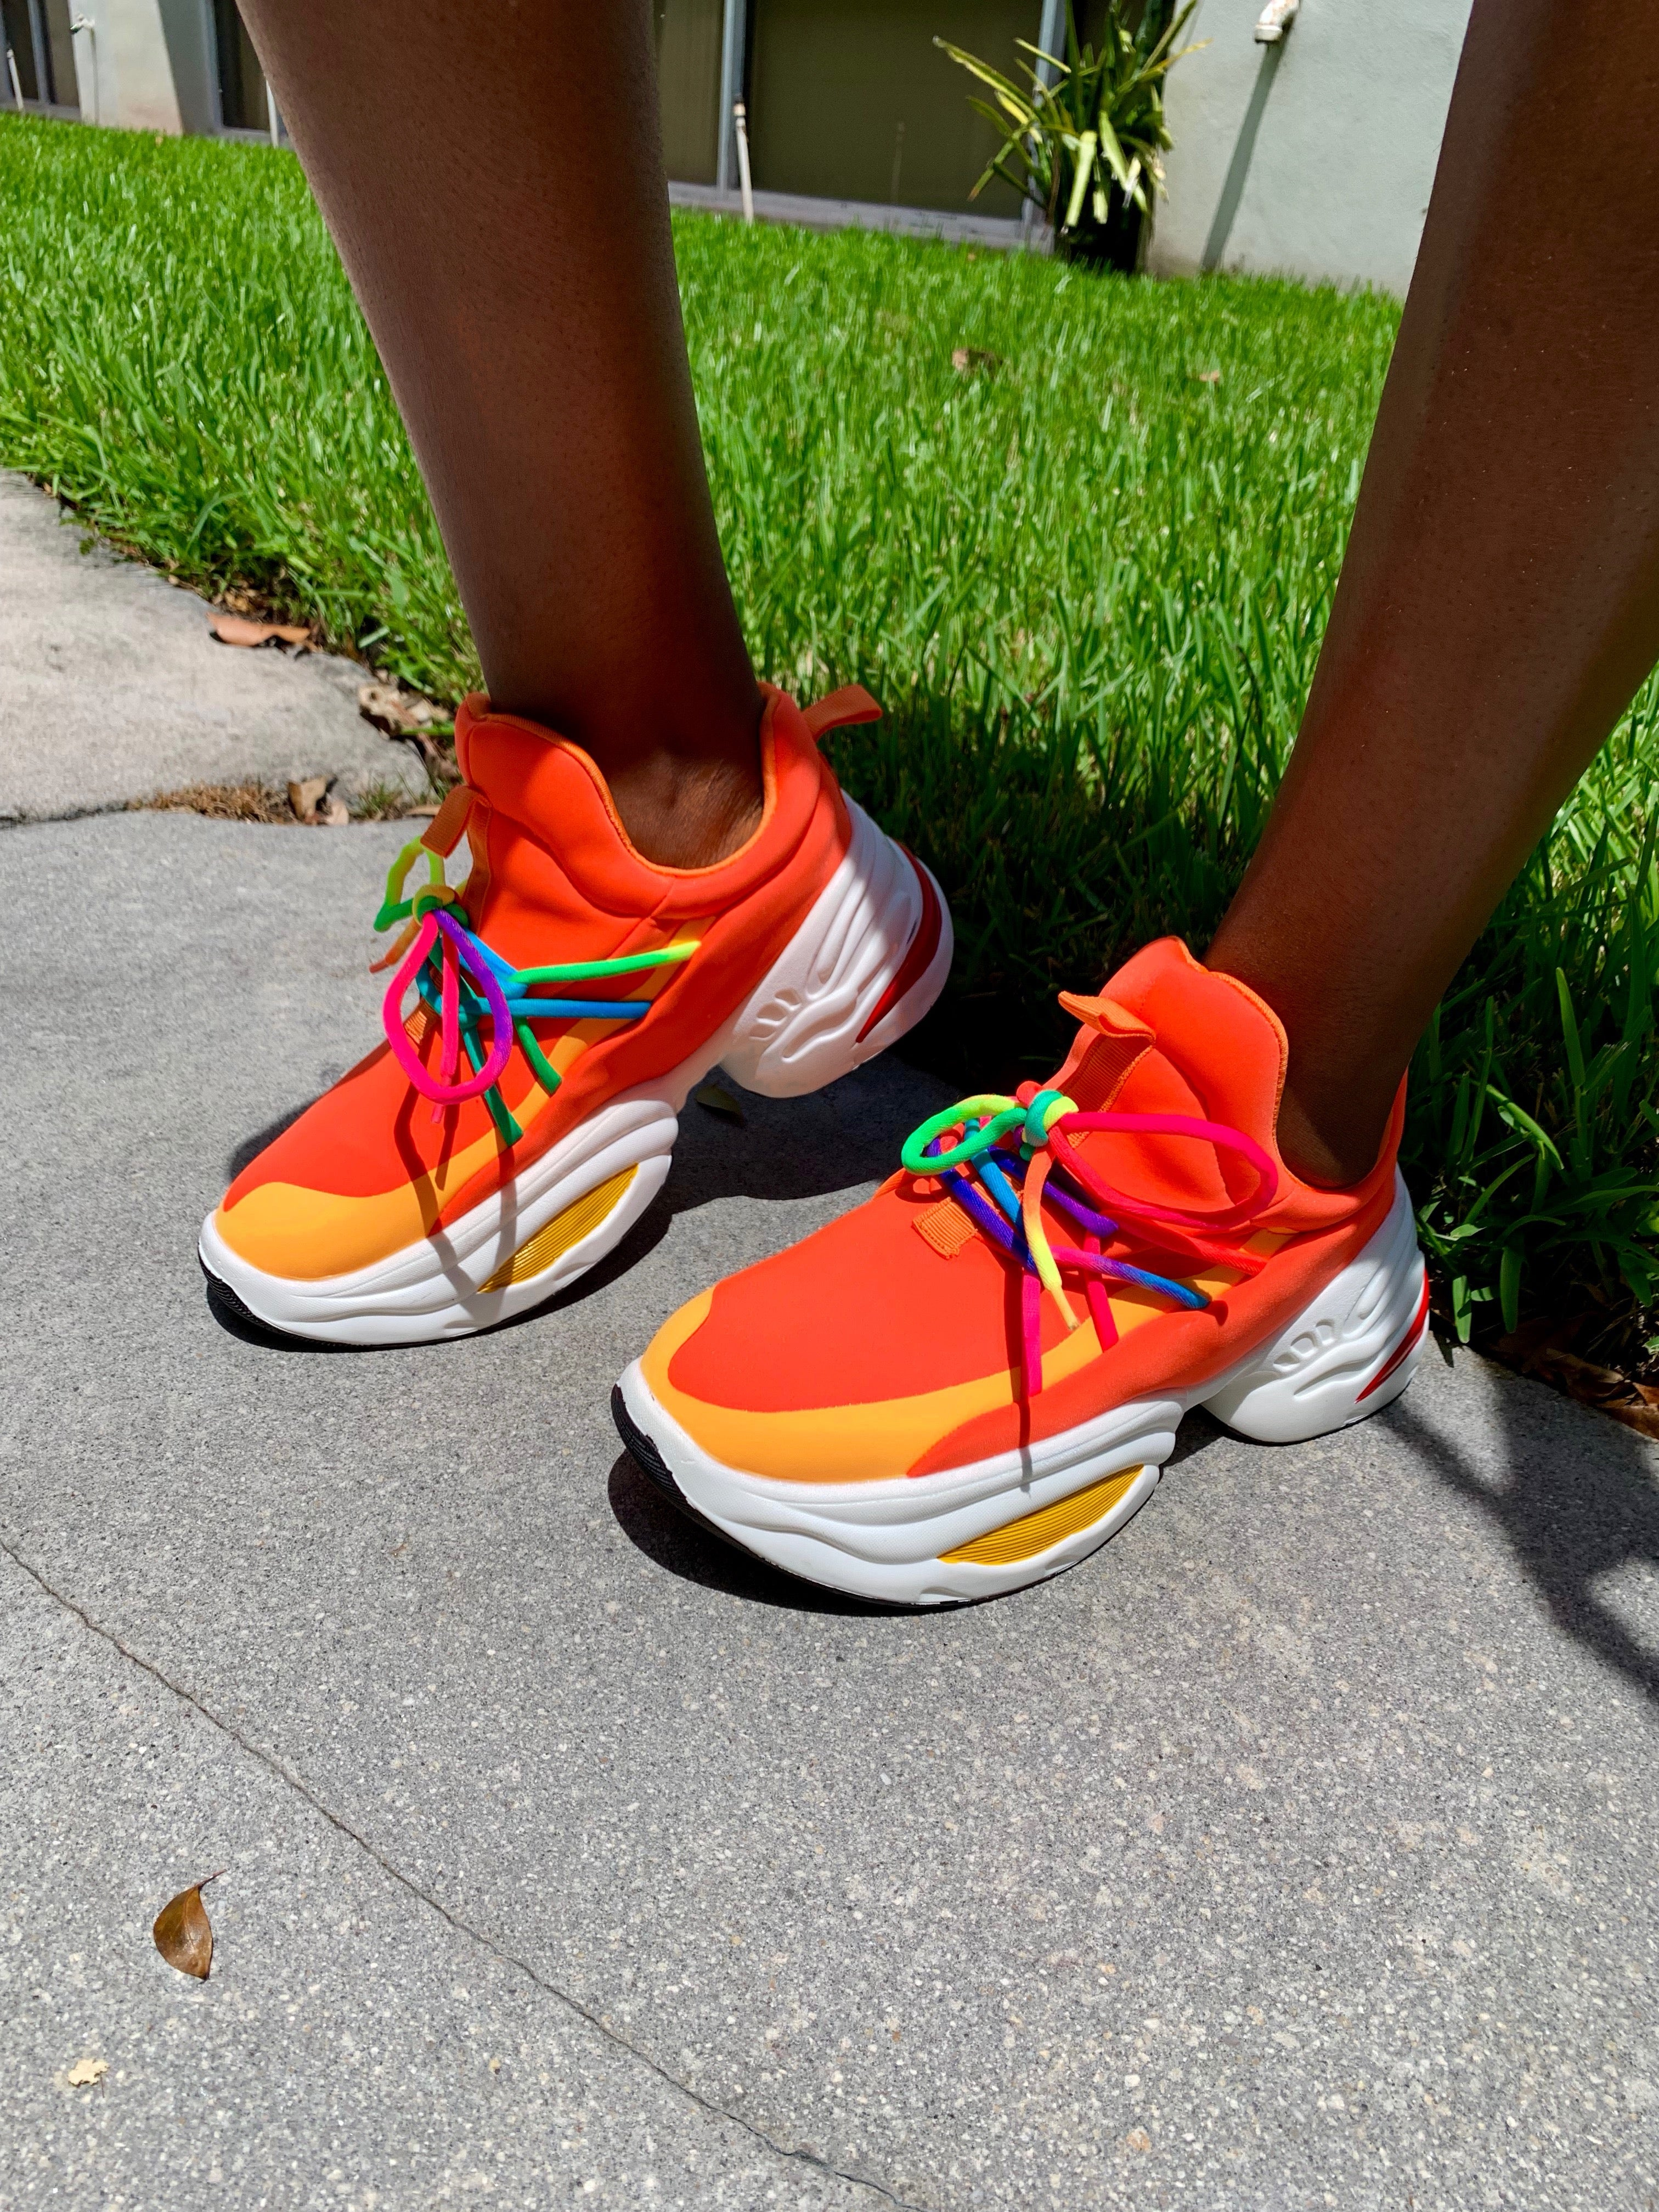 Orange Brust Trainers 🍊 - SHOP SO REAL